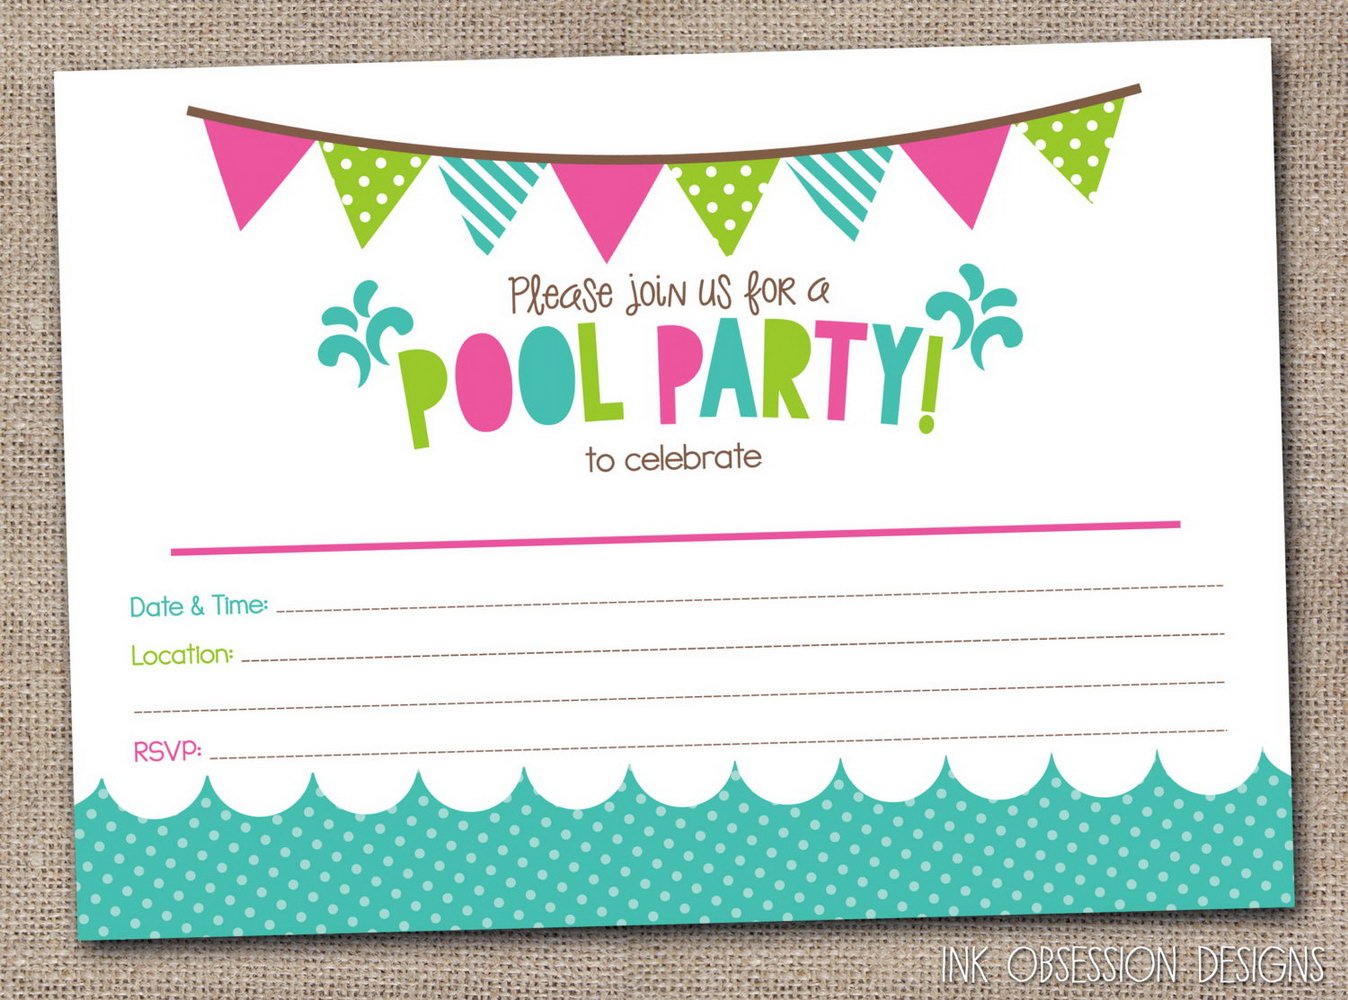 Party Invitation Templates In Afrikaans